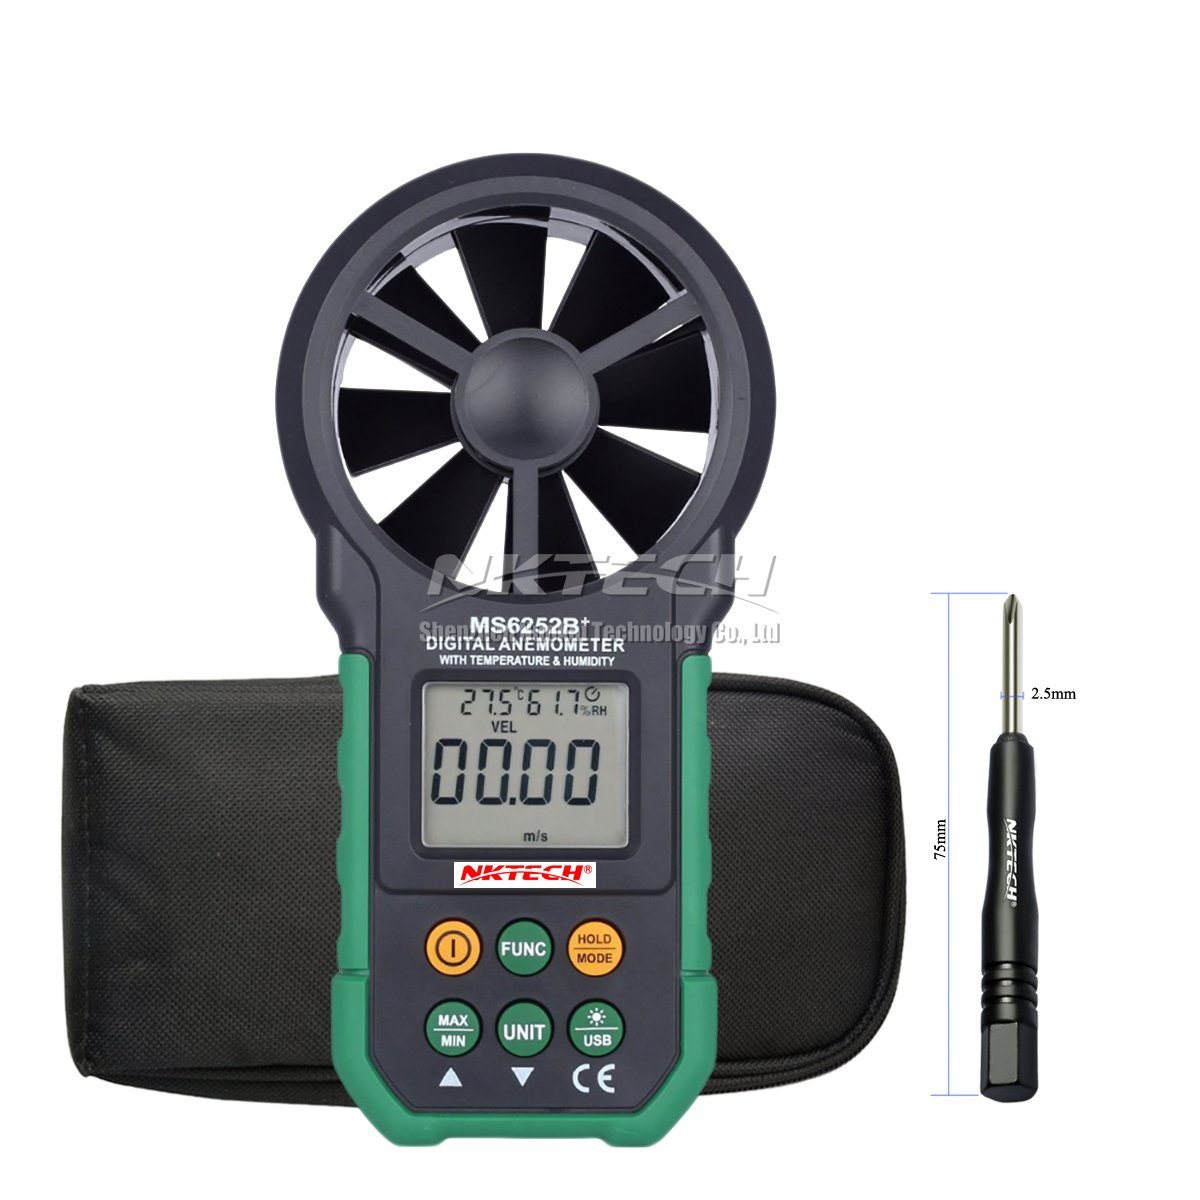 NKTECH MS6252B+ Digital Anemometer Wind Speed Meter Air Flow Volume Ambient with Temperature Humidity Display USB Data Upload Backlight Handheld LCD Electronic Test